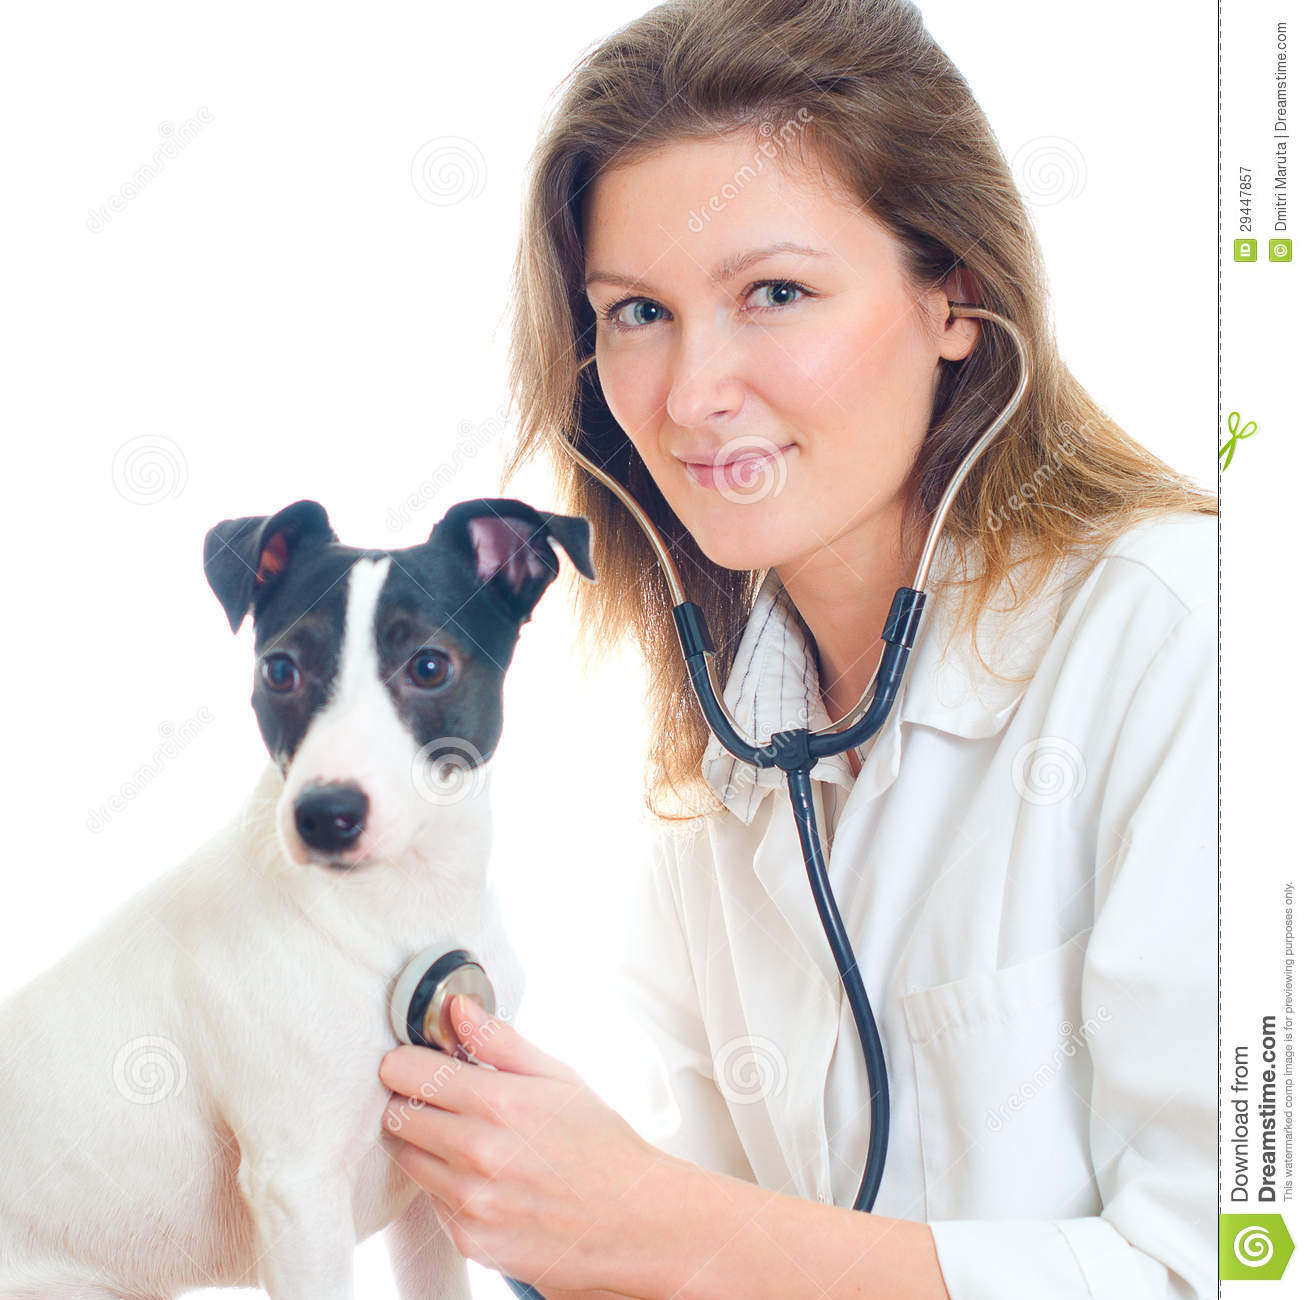 Watch How to Care for a Jack Russell video